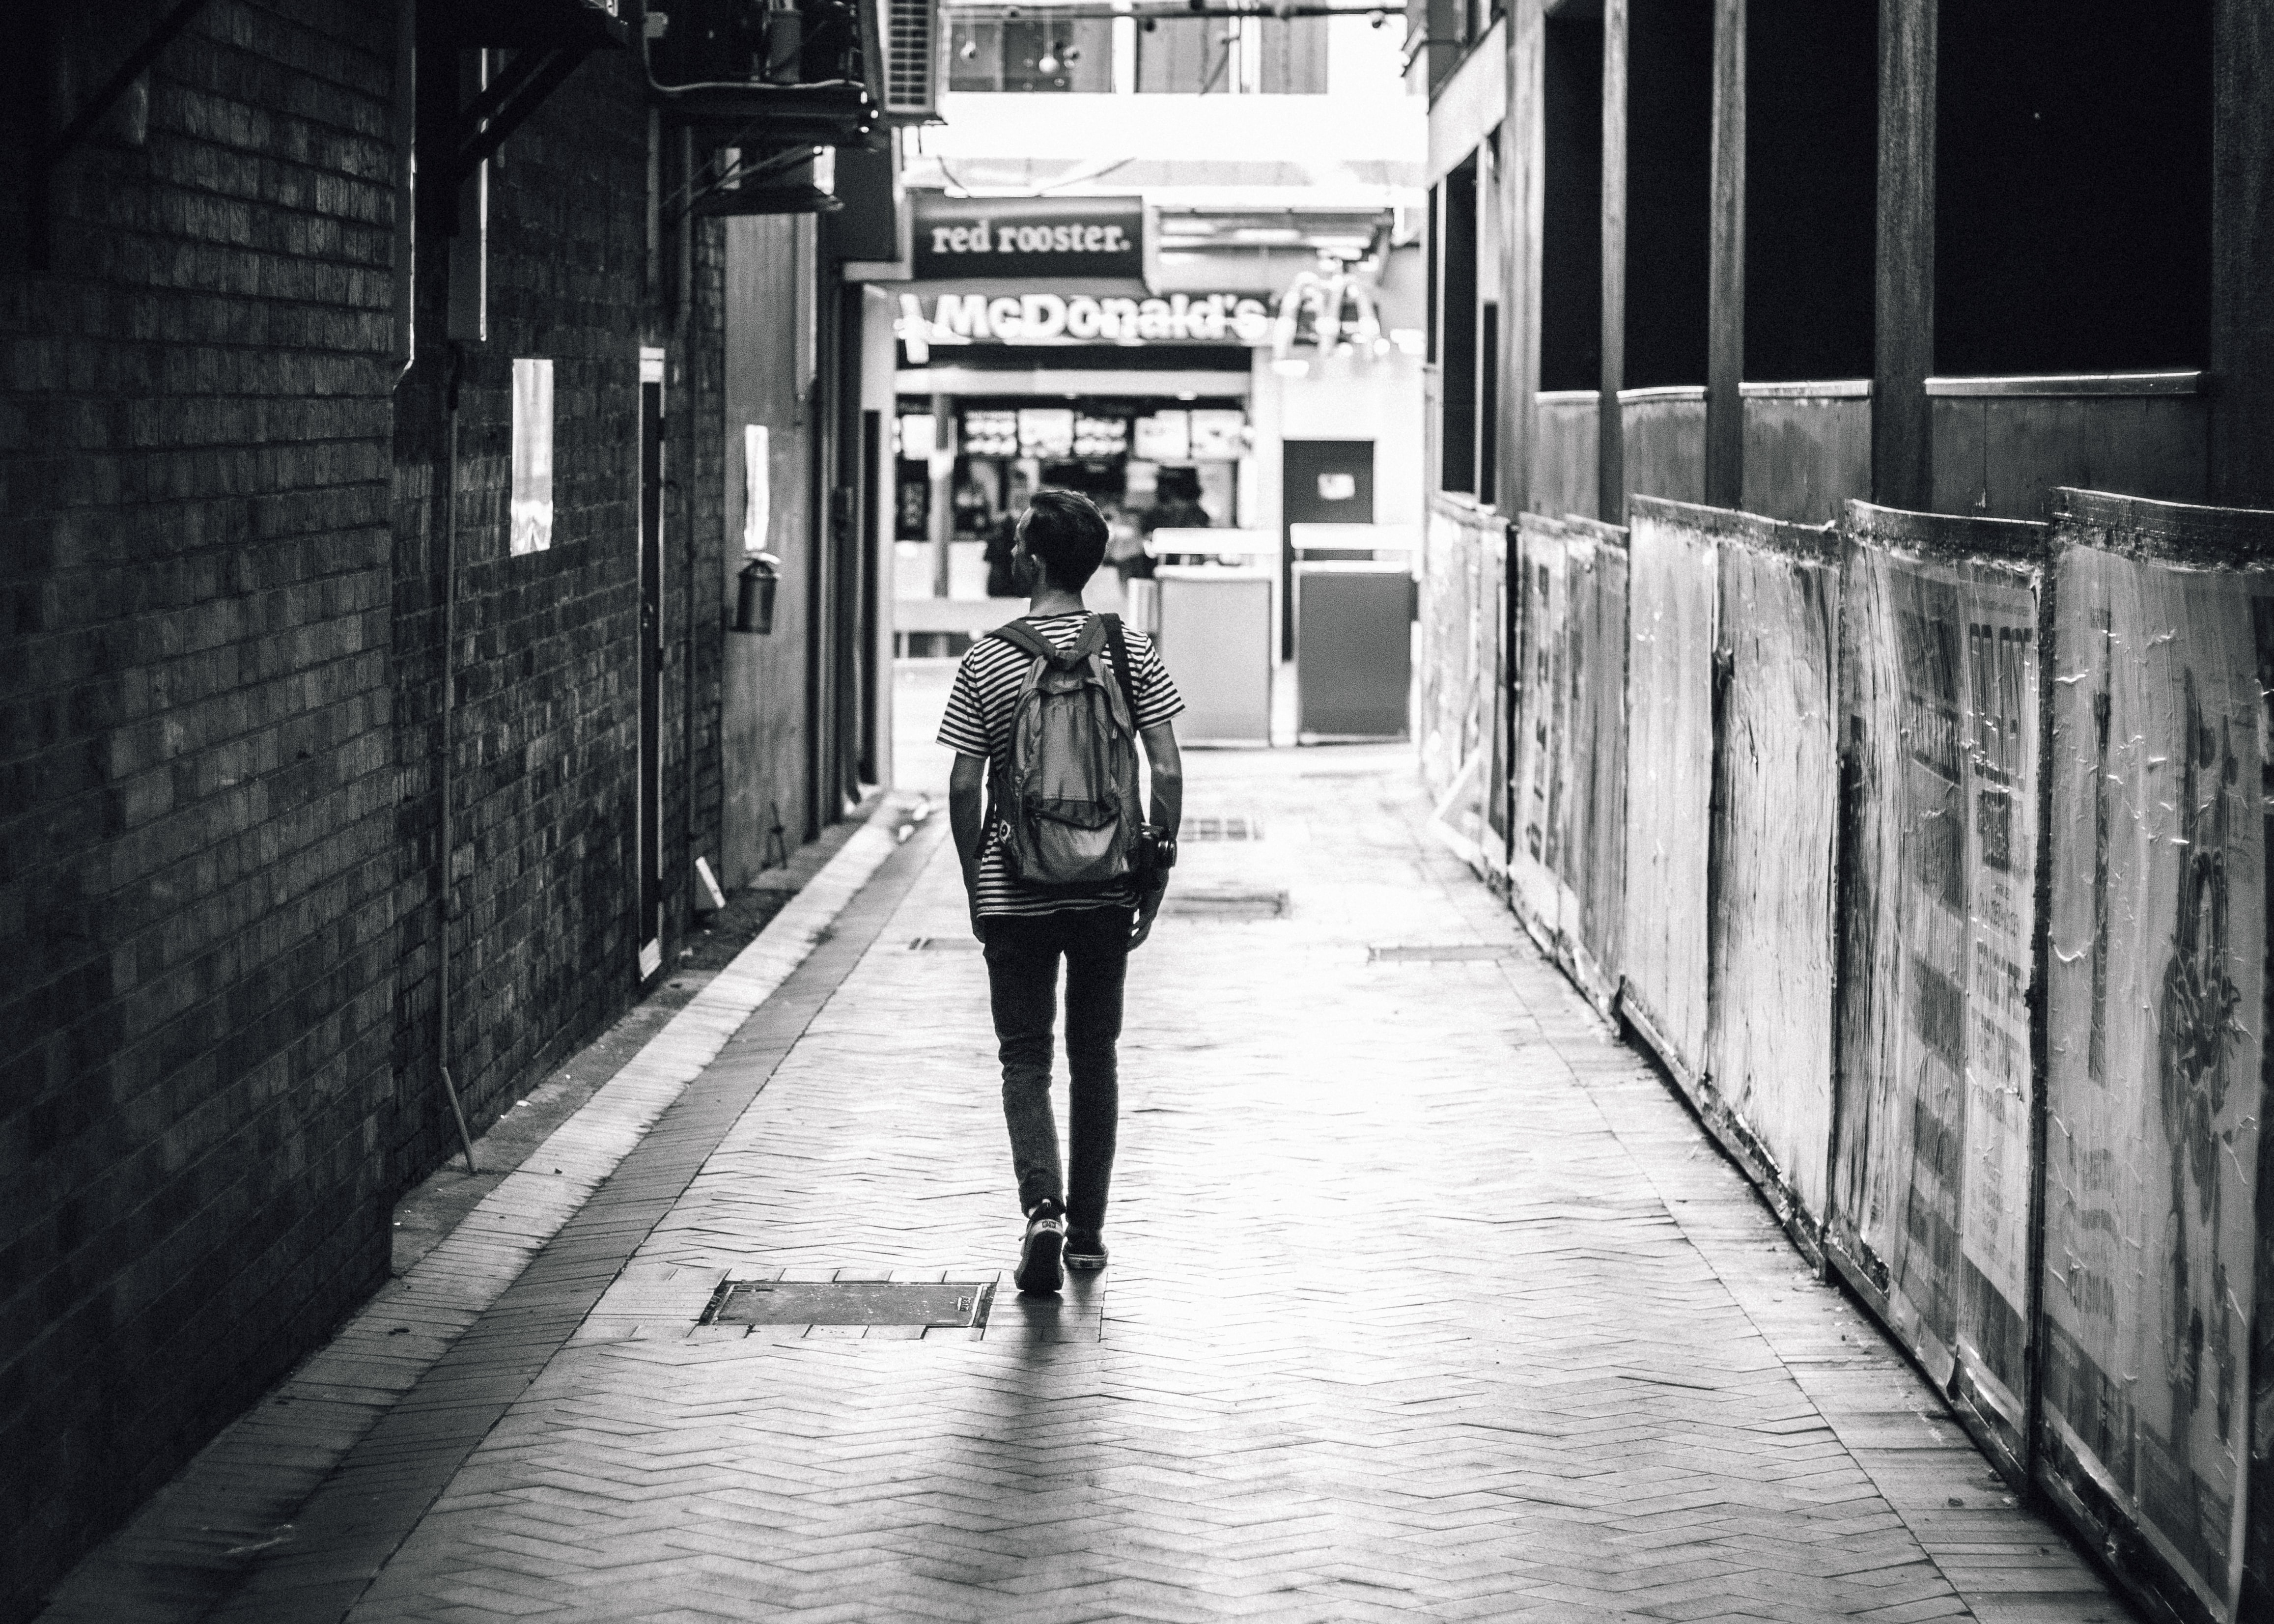 Man walking down an open alley in a striped shirt with a McDonald's ahead of him